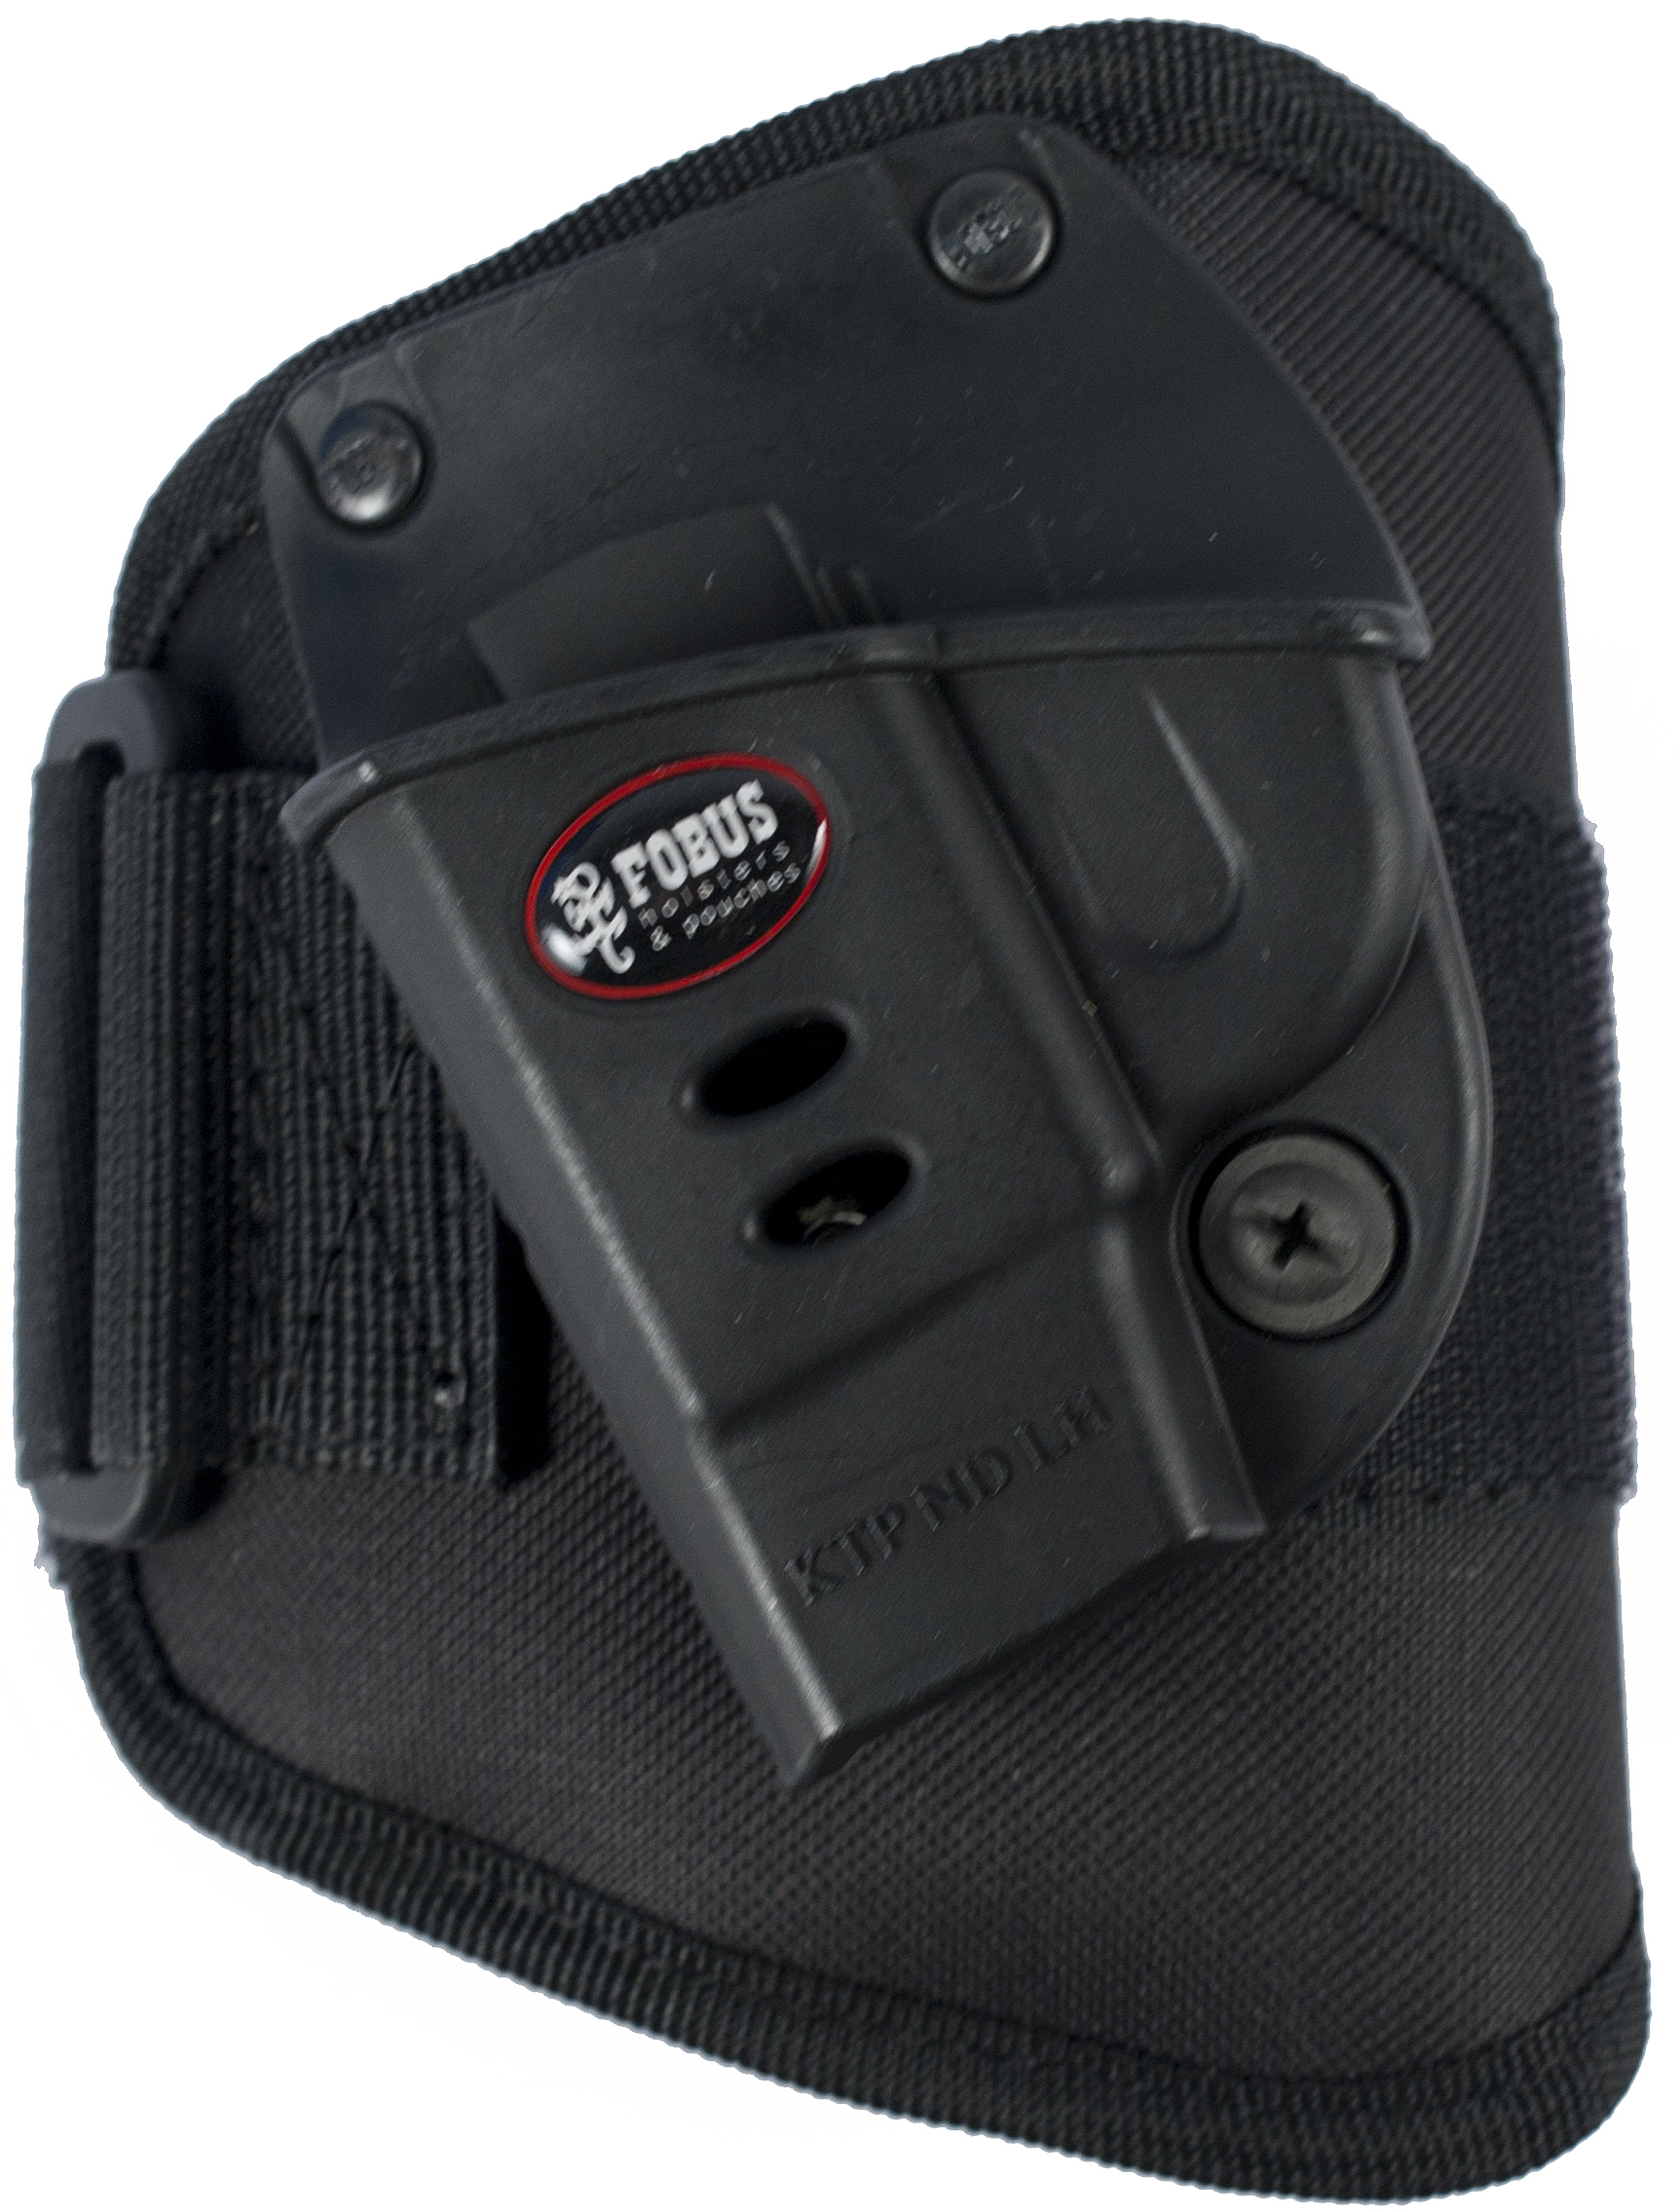 Fobus Ankle Holster for Ruger LCP and Kel-Tec 2nd Generation P3AT  380 &  32